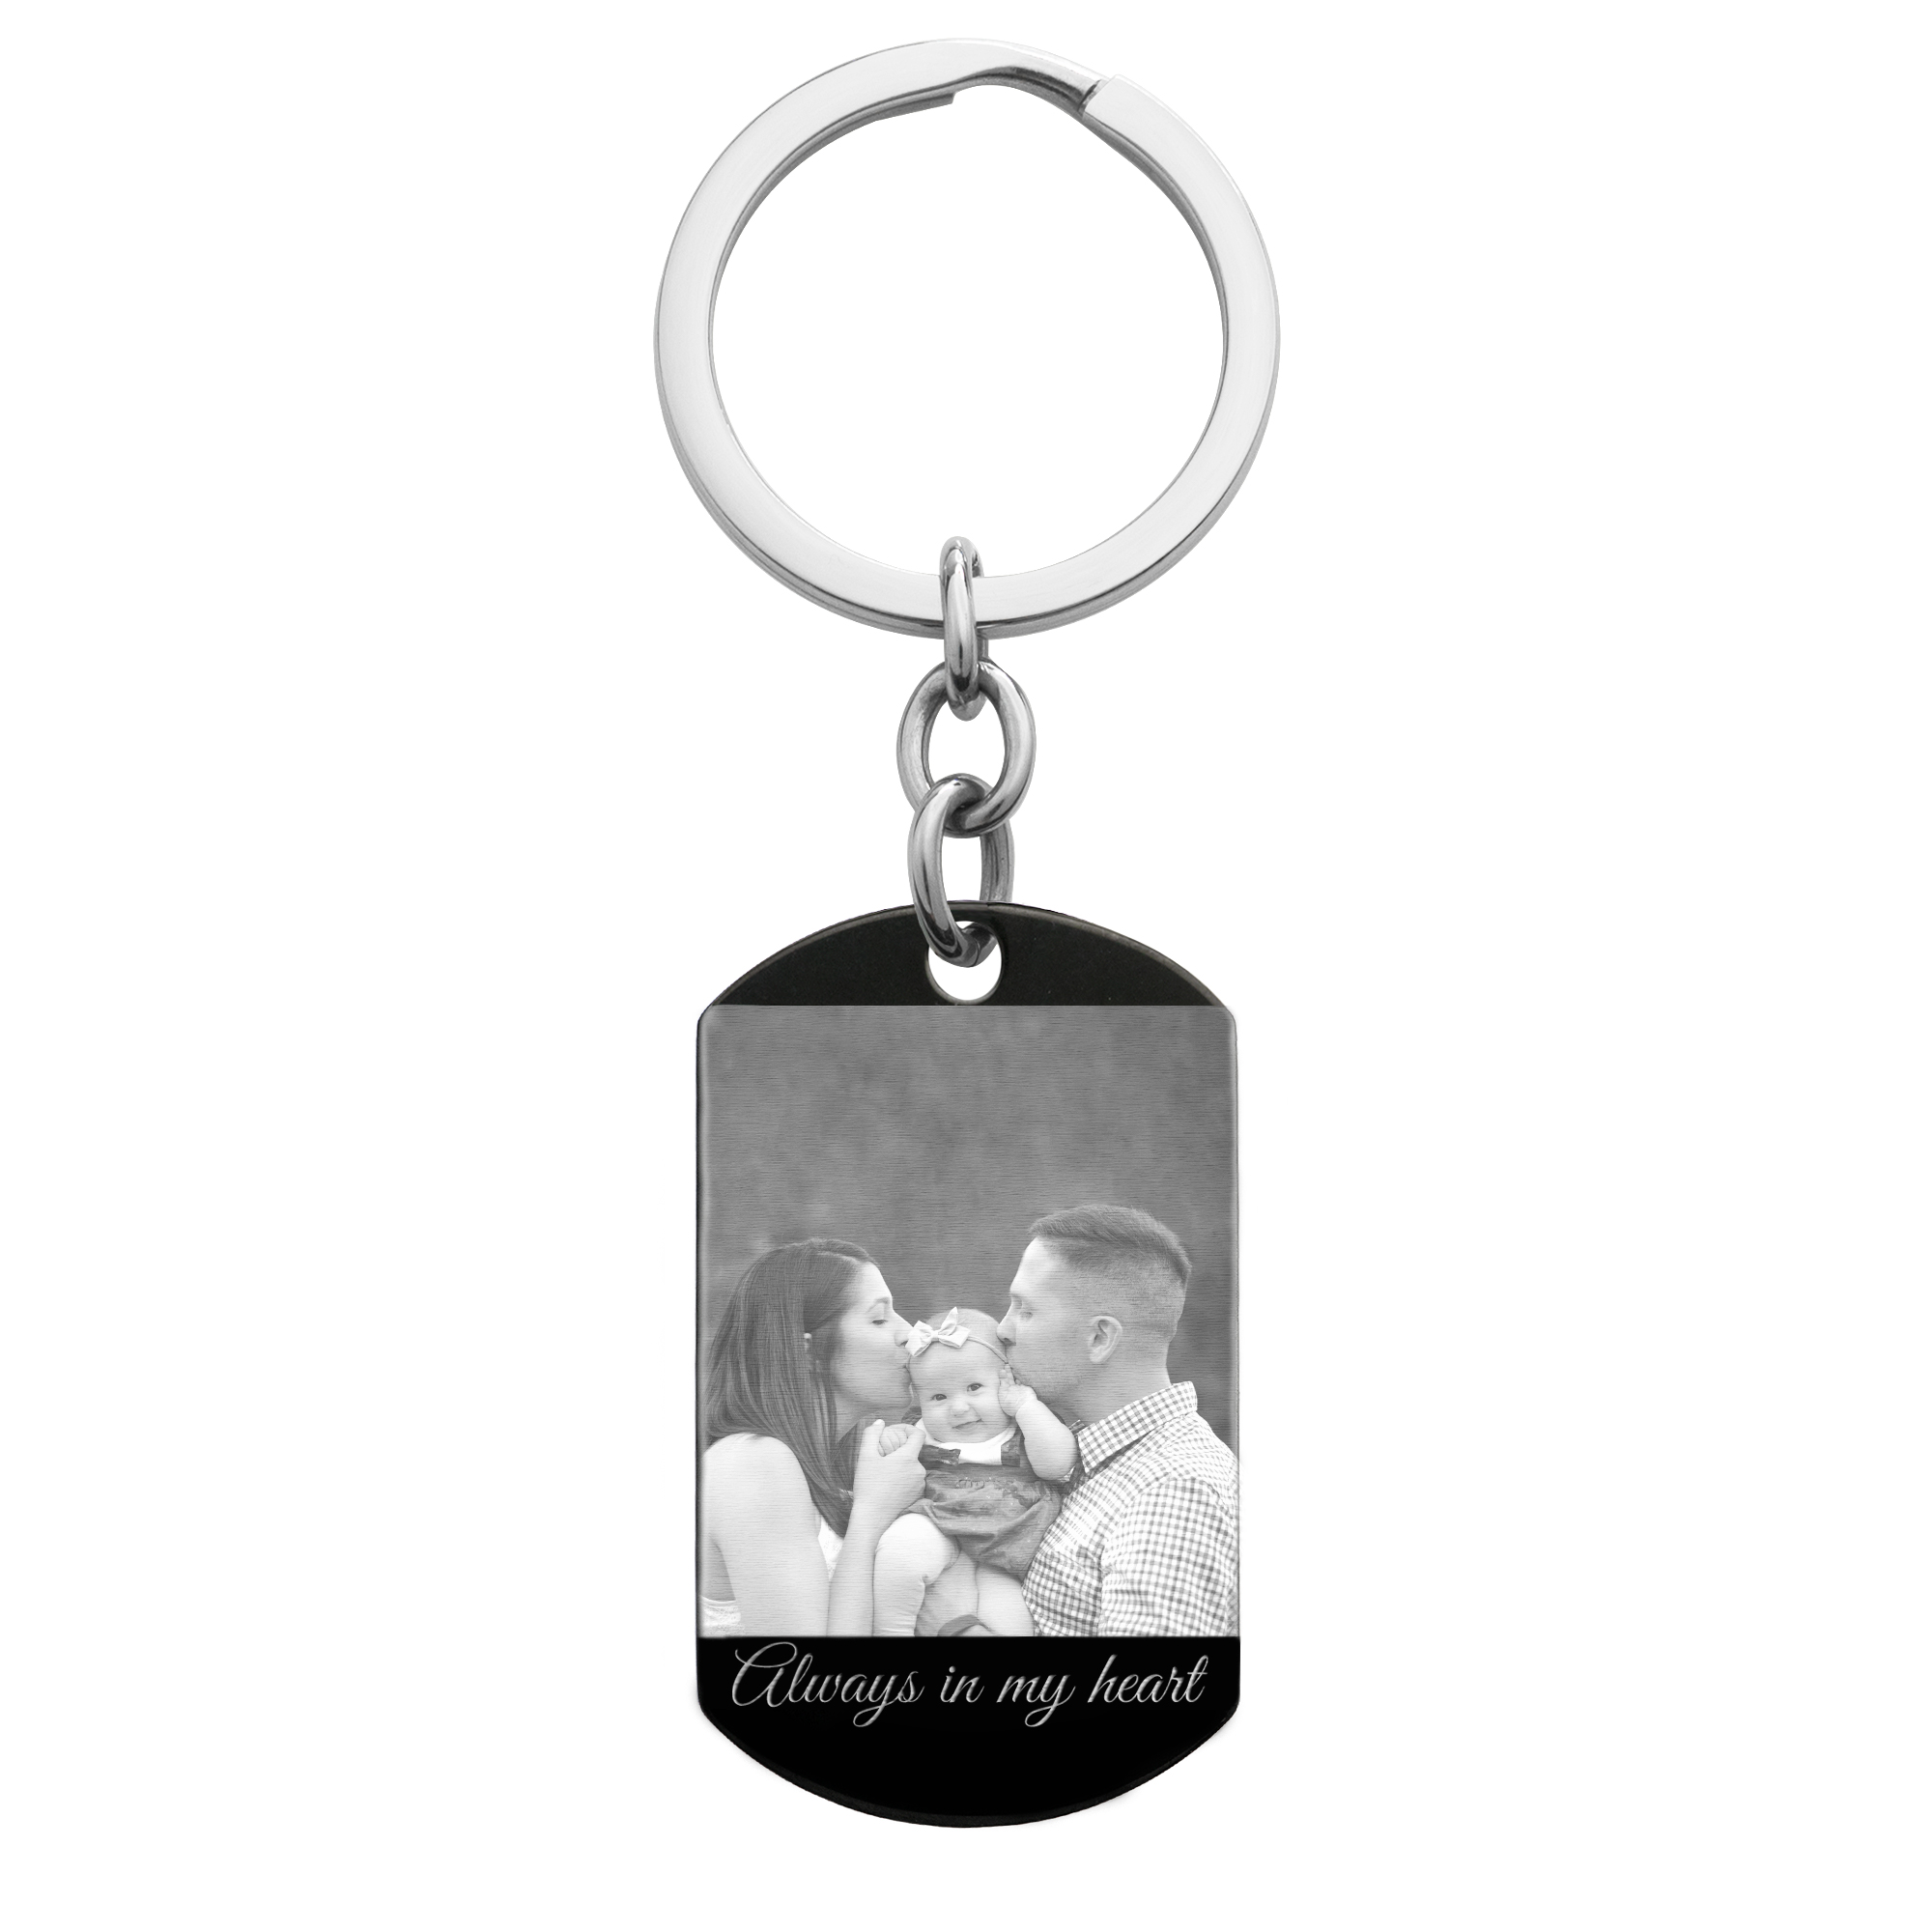 Personalized Photo Text Message Engraved Stainless Steel Custom Dog Tag Keychain Key Ring